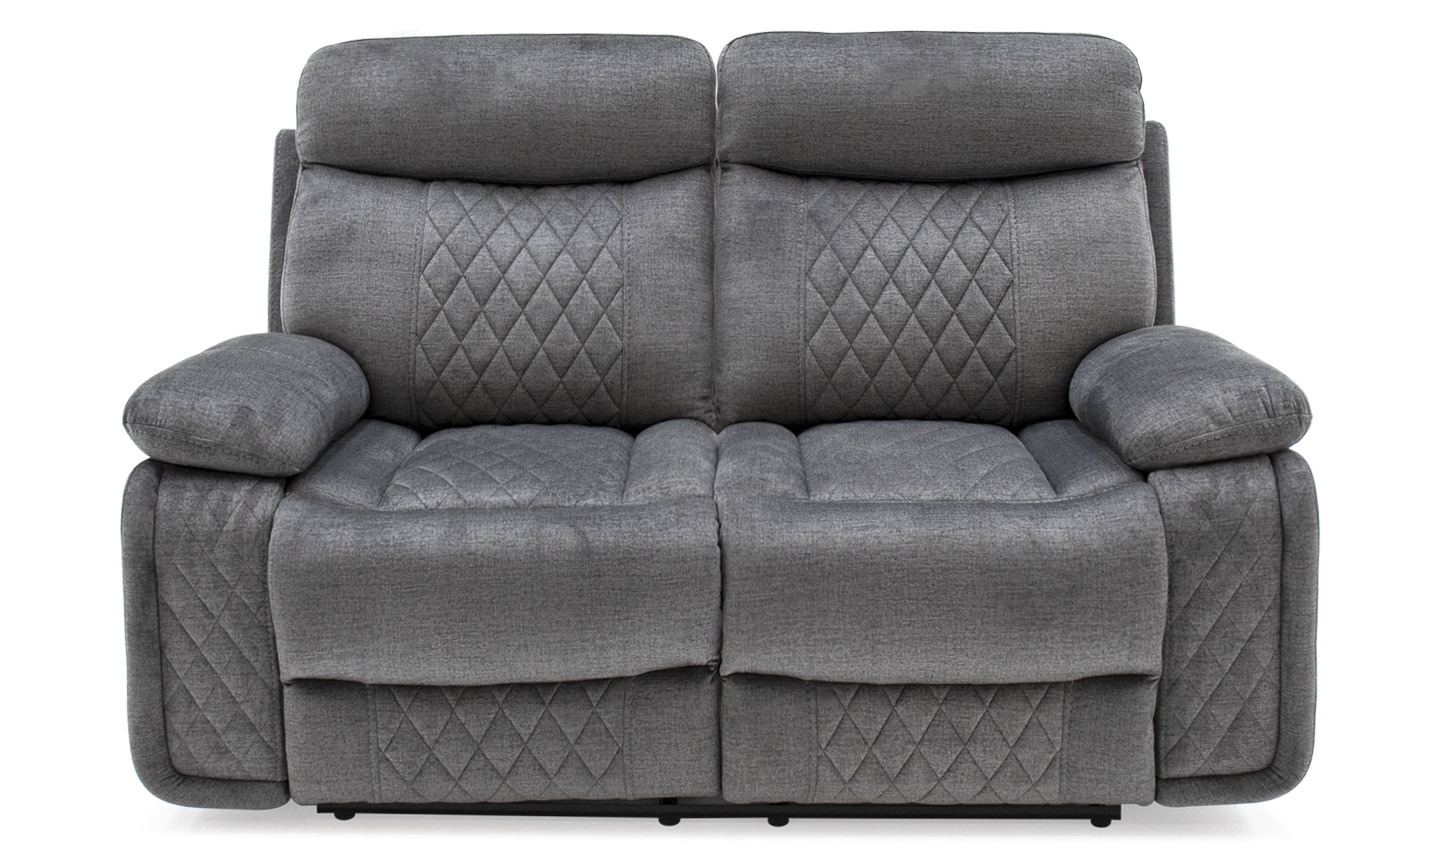 Eason 2 Seater Rec Straight - Grey.jpg